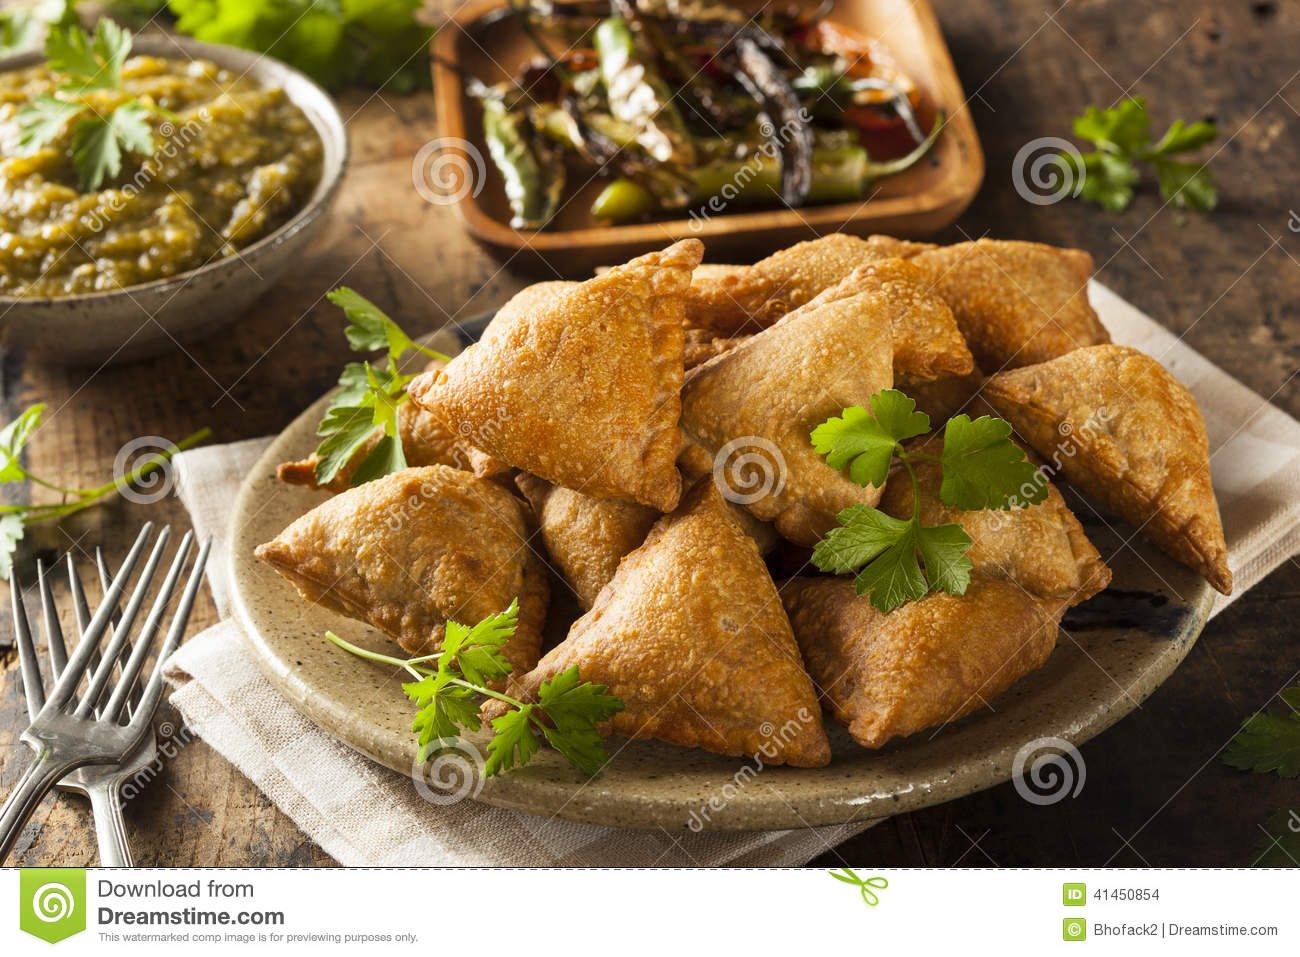 Fried Indian Samosas fait maison